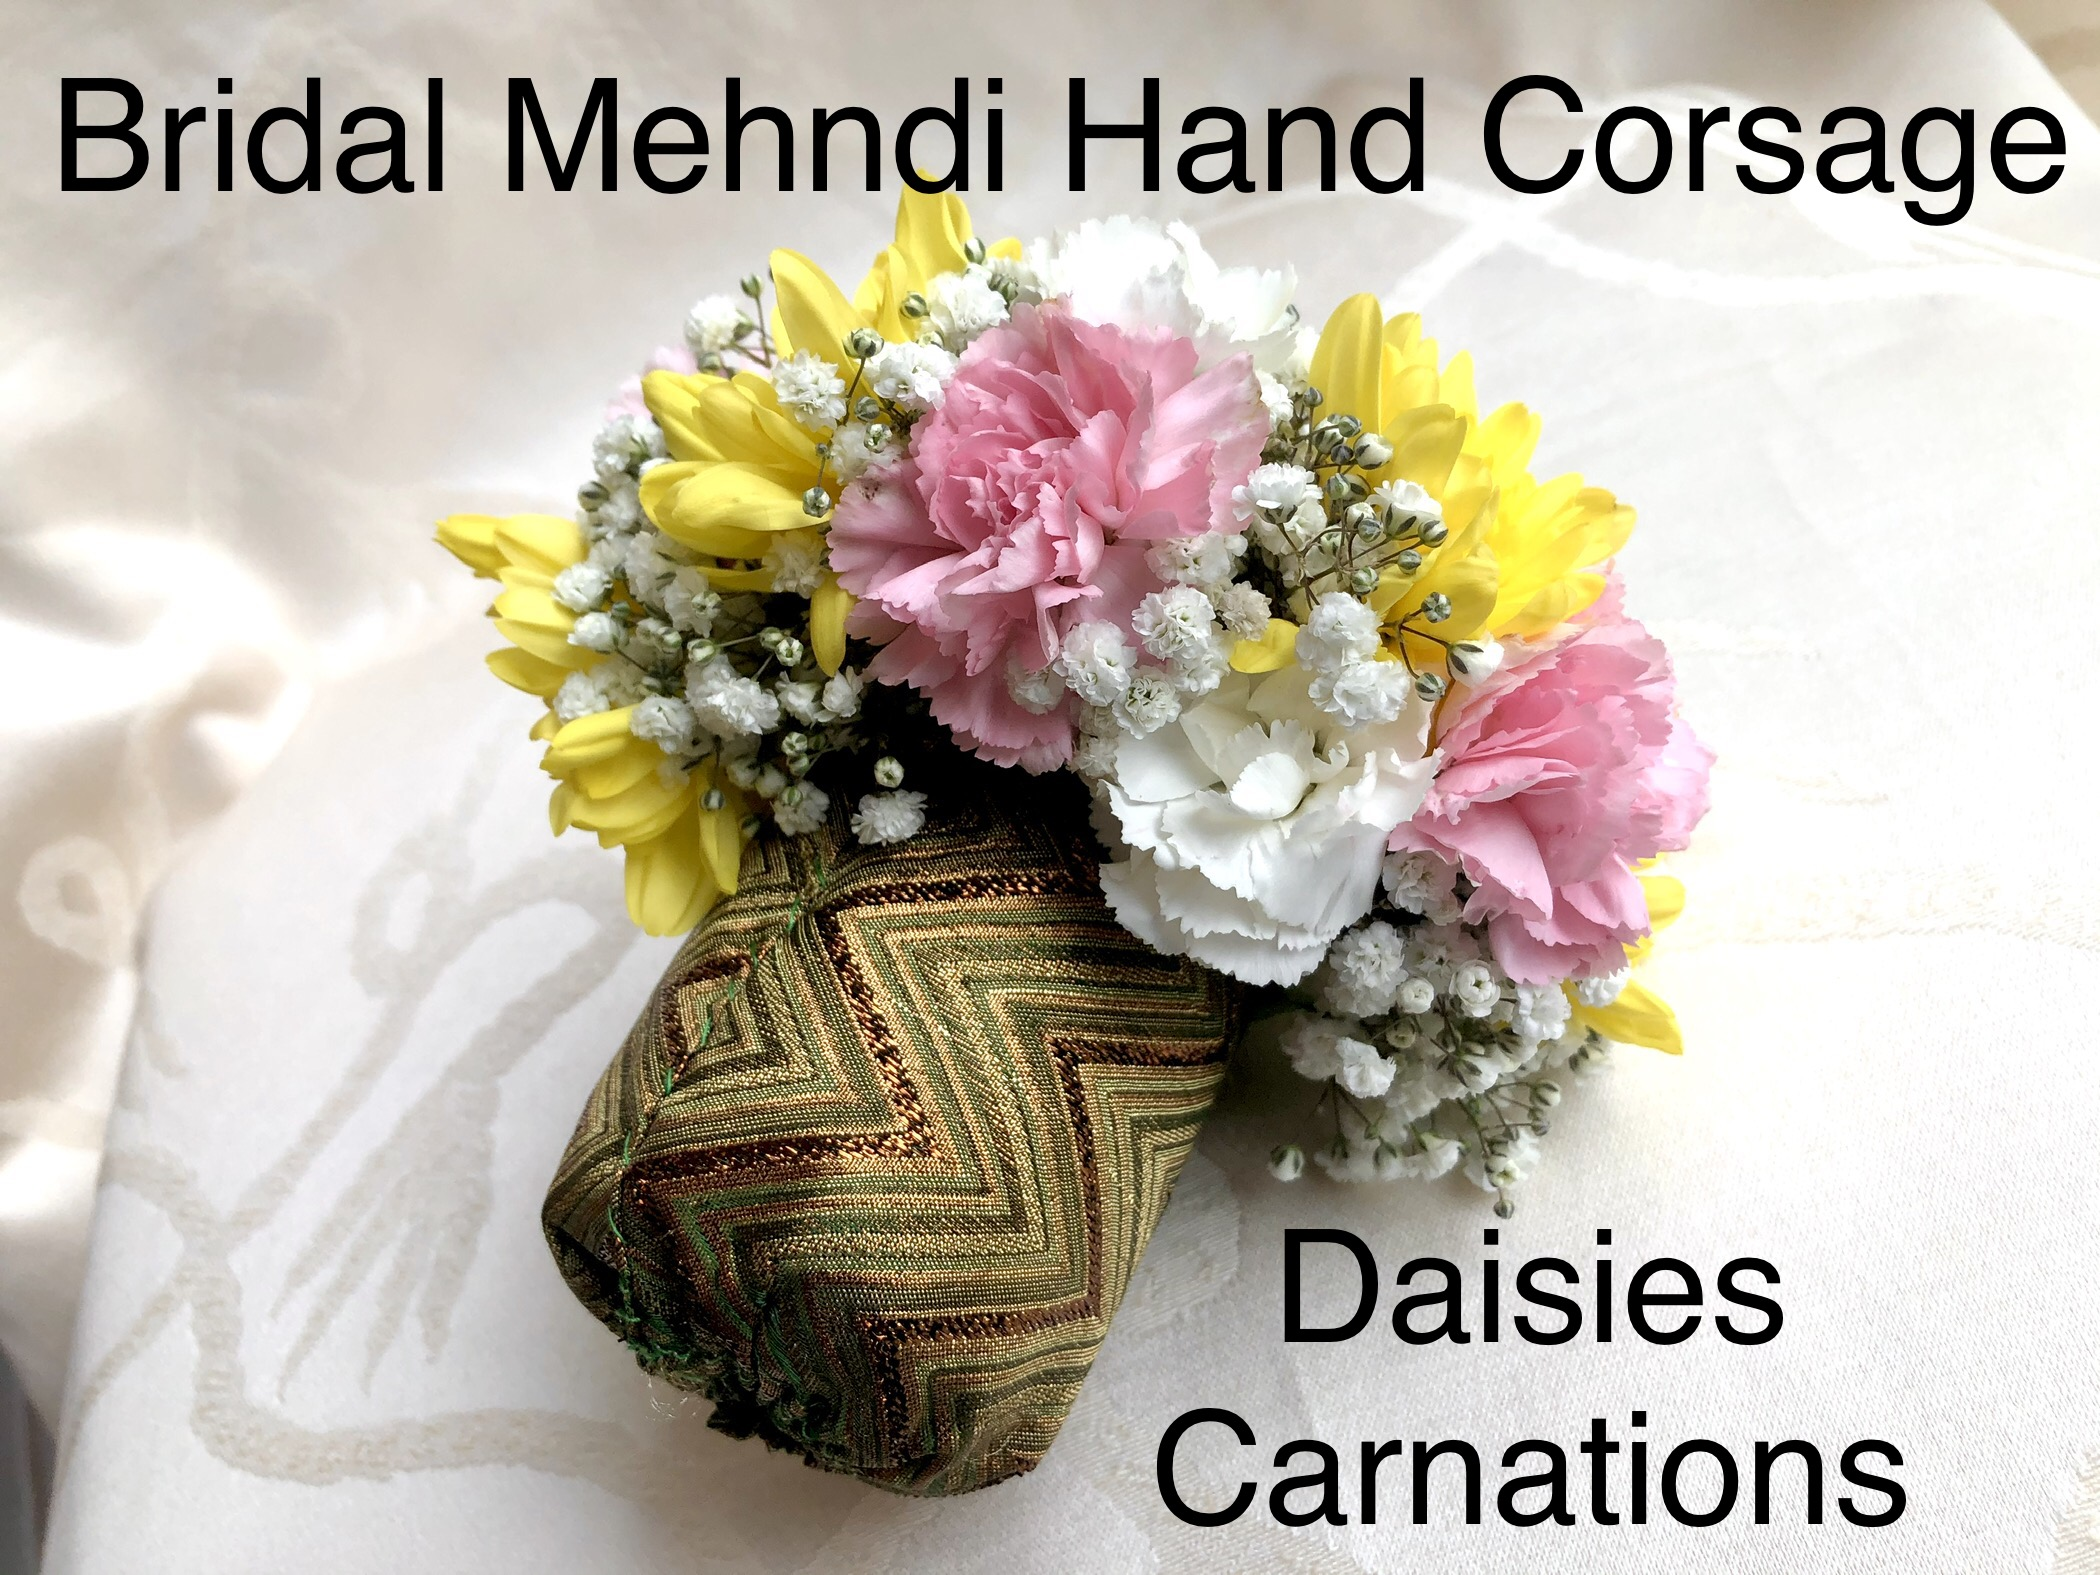 https://0901.nccdn.net/4_2/000/000/01e/20c/bridal-mehndi-hand-corsage-daisies-and-carnations.jpg